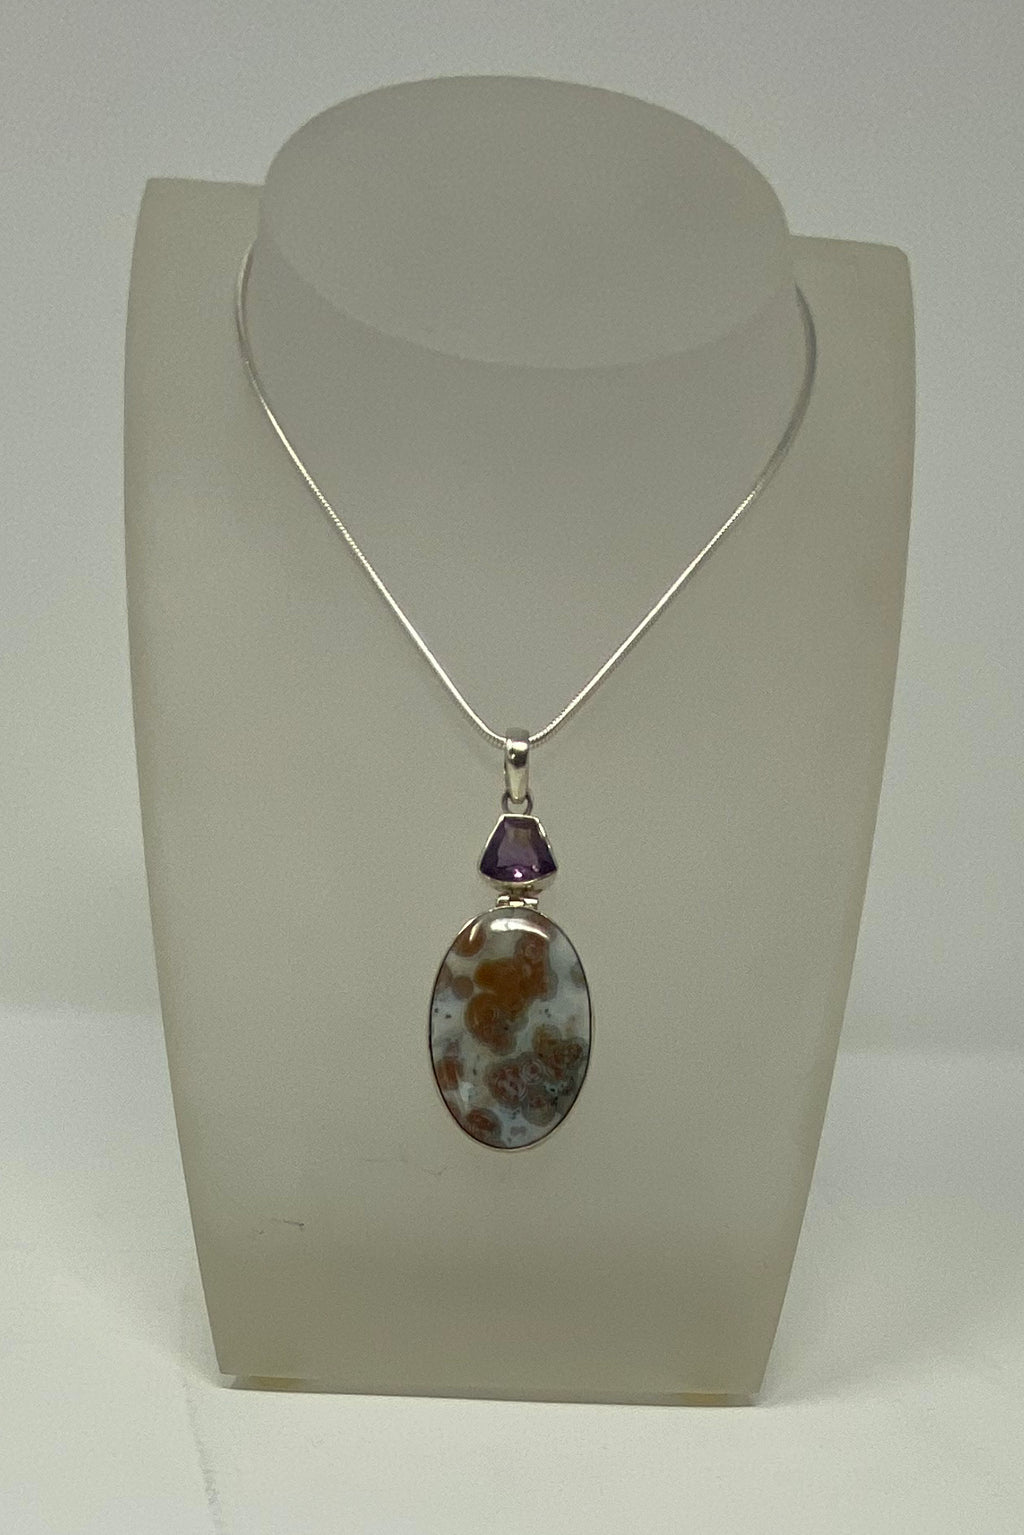 Amethyst and Jasper Necklace